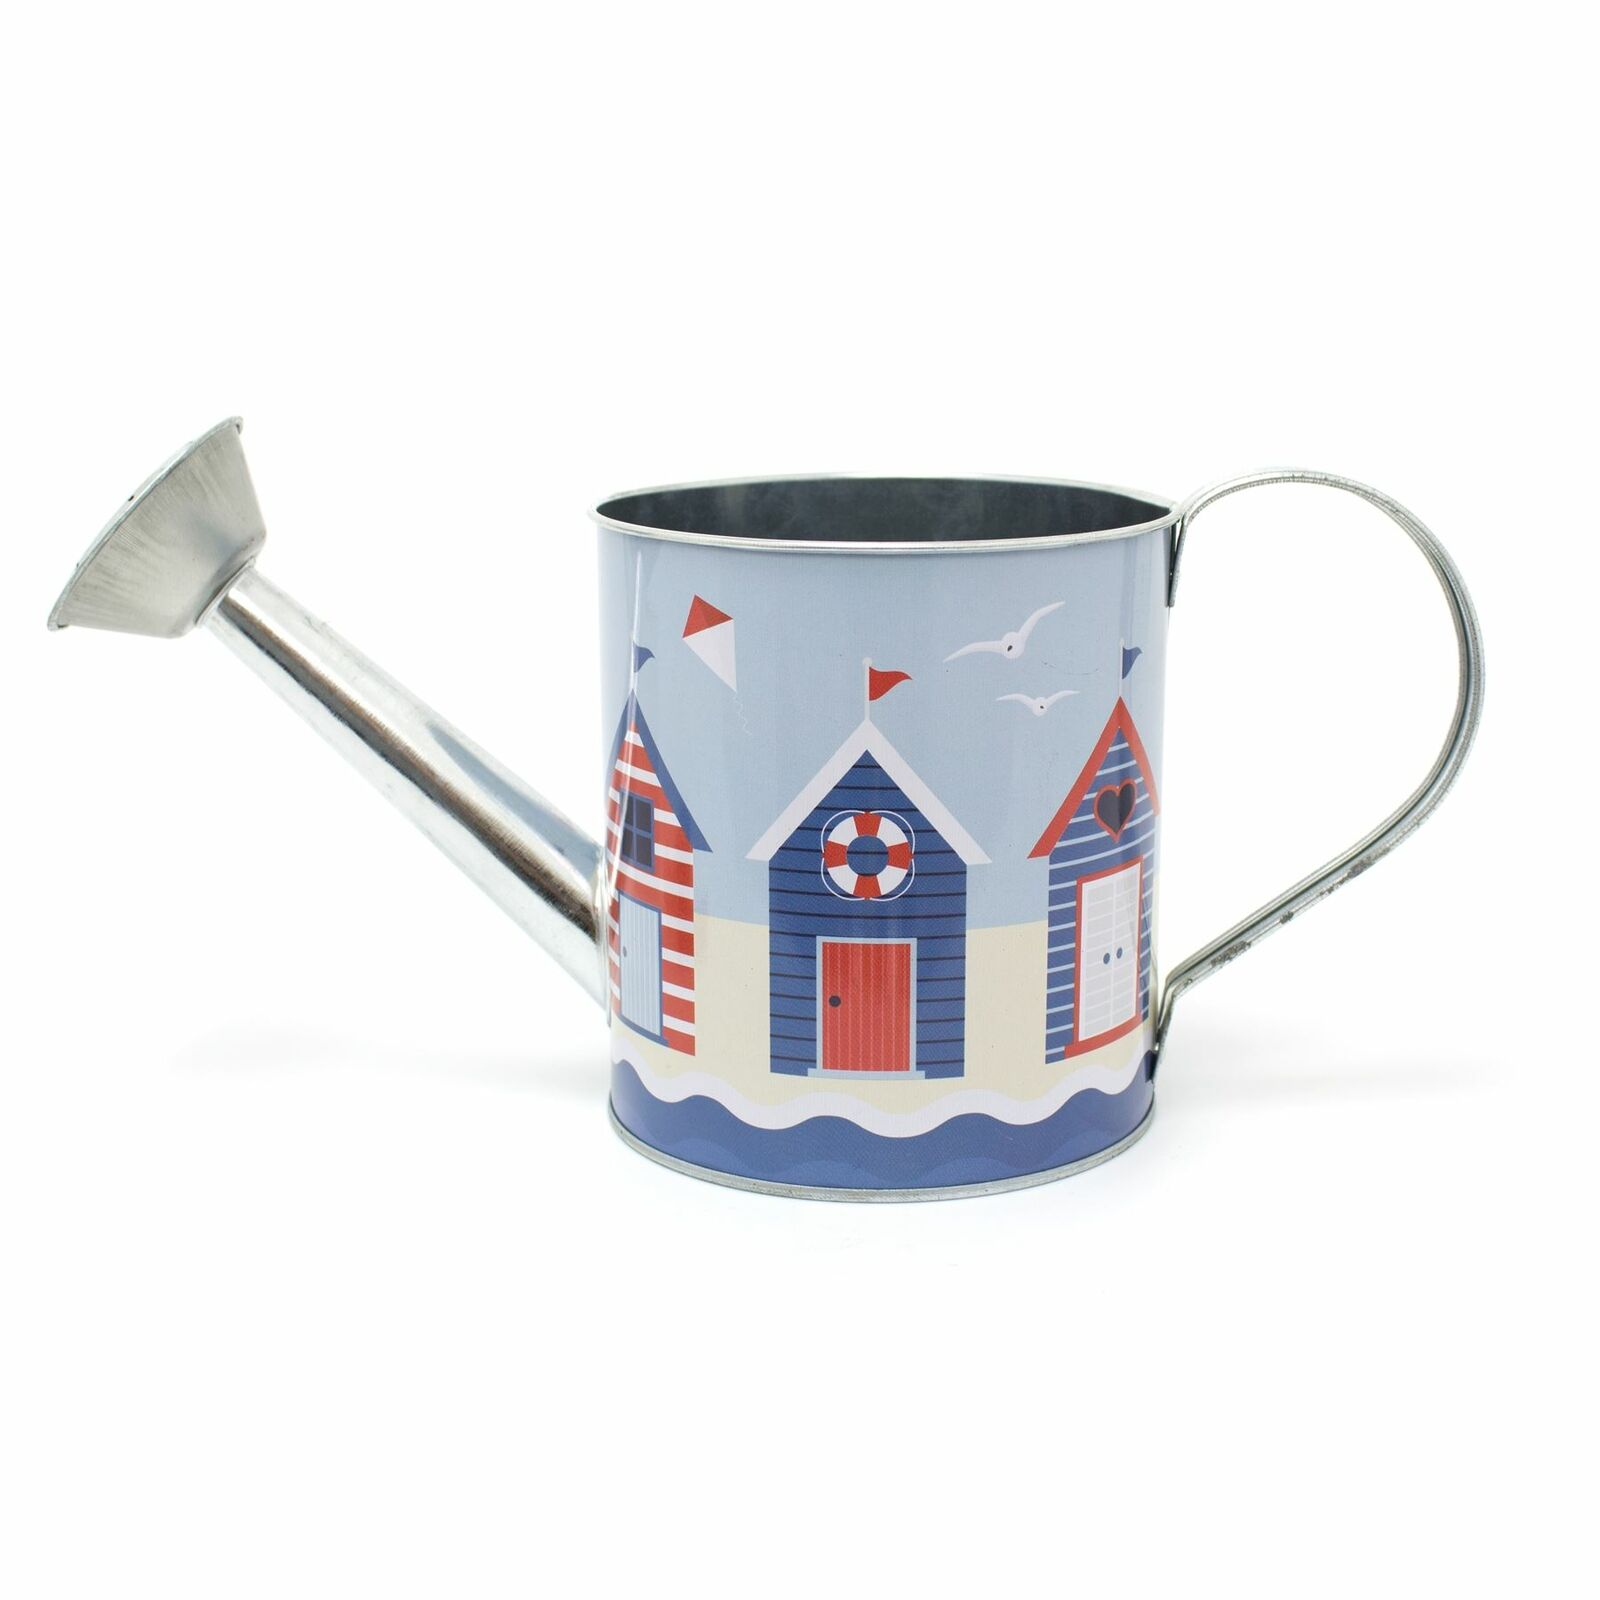 Watering Can Beach Huts Design | Tin Watering Sprinkler Can Nautical Decoration